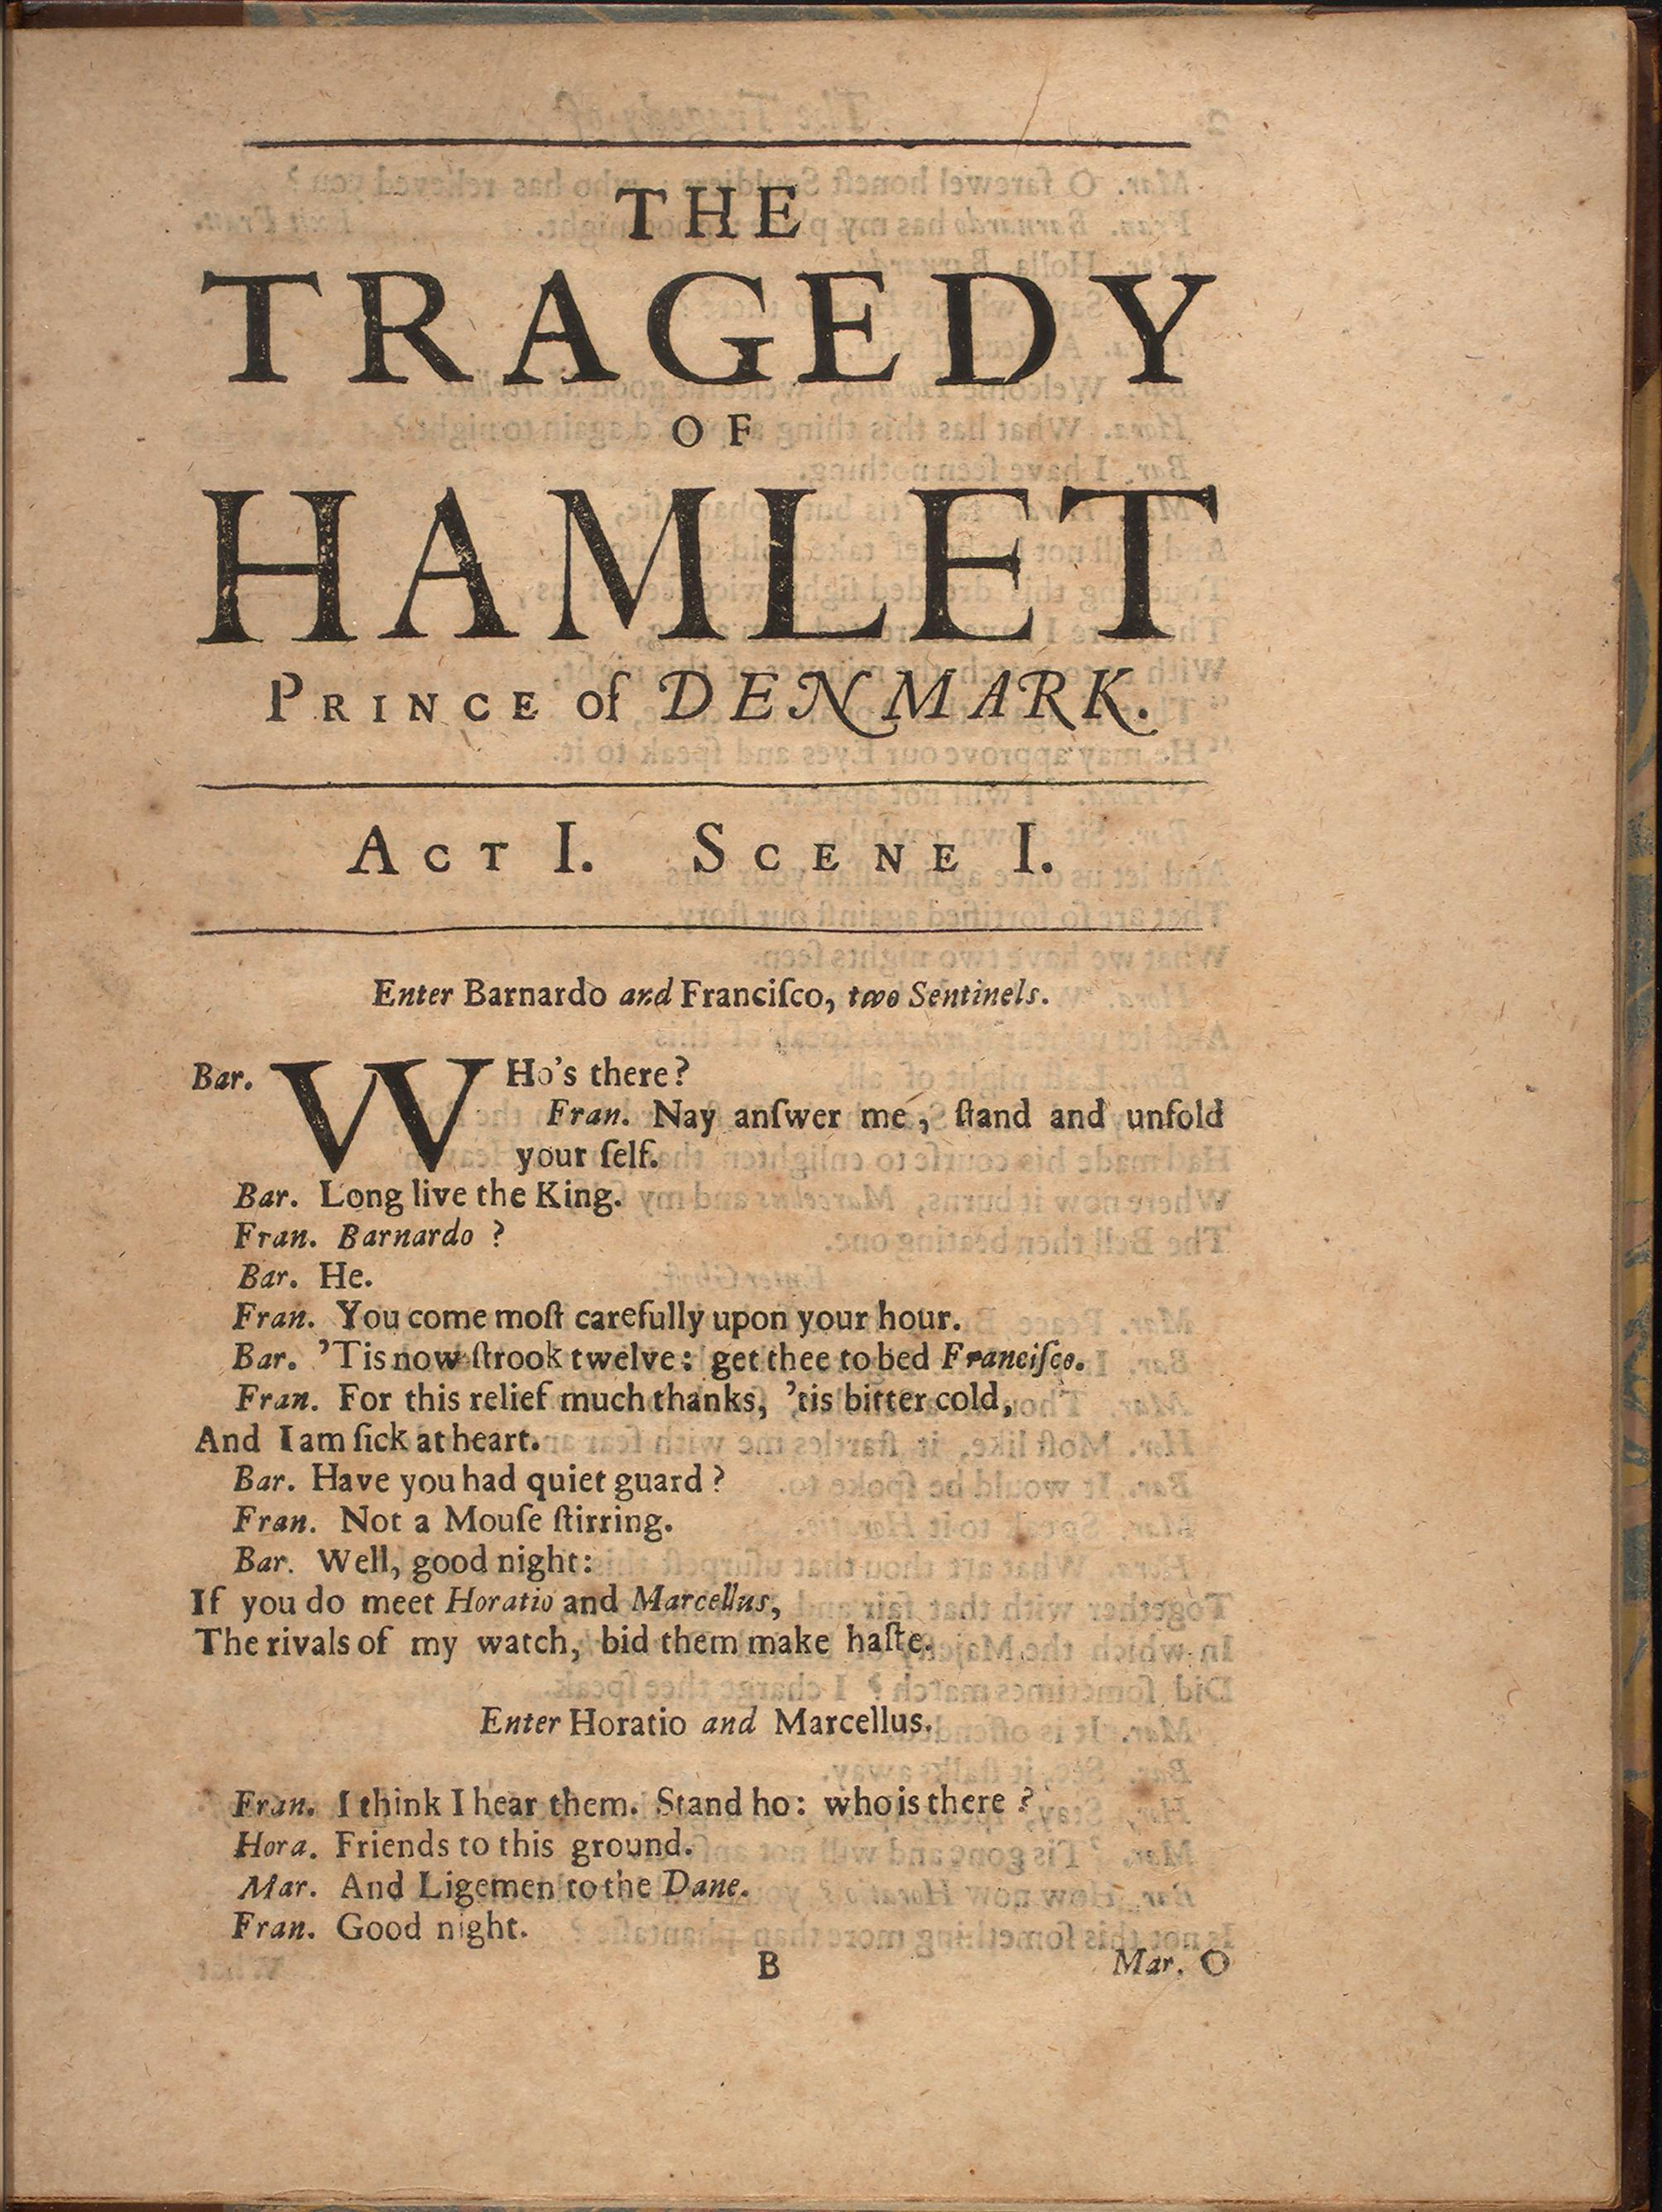 a review of the william shakespeares tragedy of macbeth Macbeth (/ m ə k ˈ b ɛ θ / full title the tragedy of macbeth) is a tragedy by william shakespeare it is thought to have been first performed in 1606 it dramatises the damaging physical and psychological effects of political ambition on those who seek power for its own sake of all the plays that shakespeare wrote during the reign of.